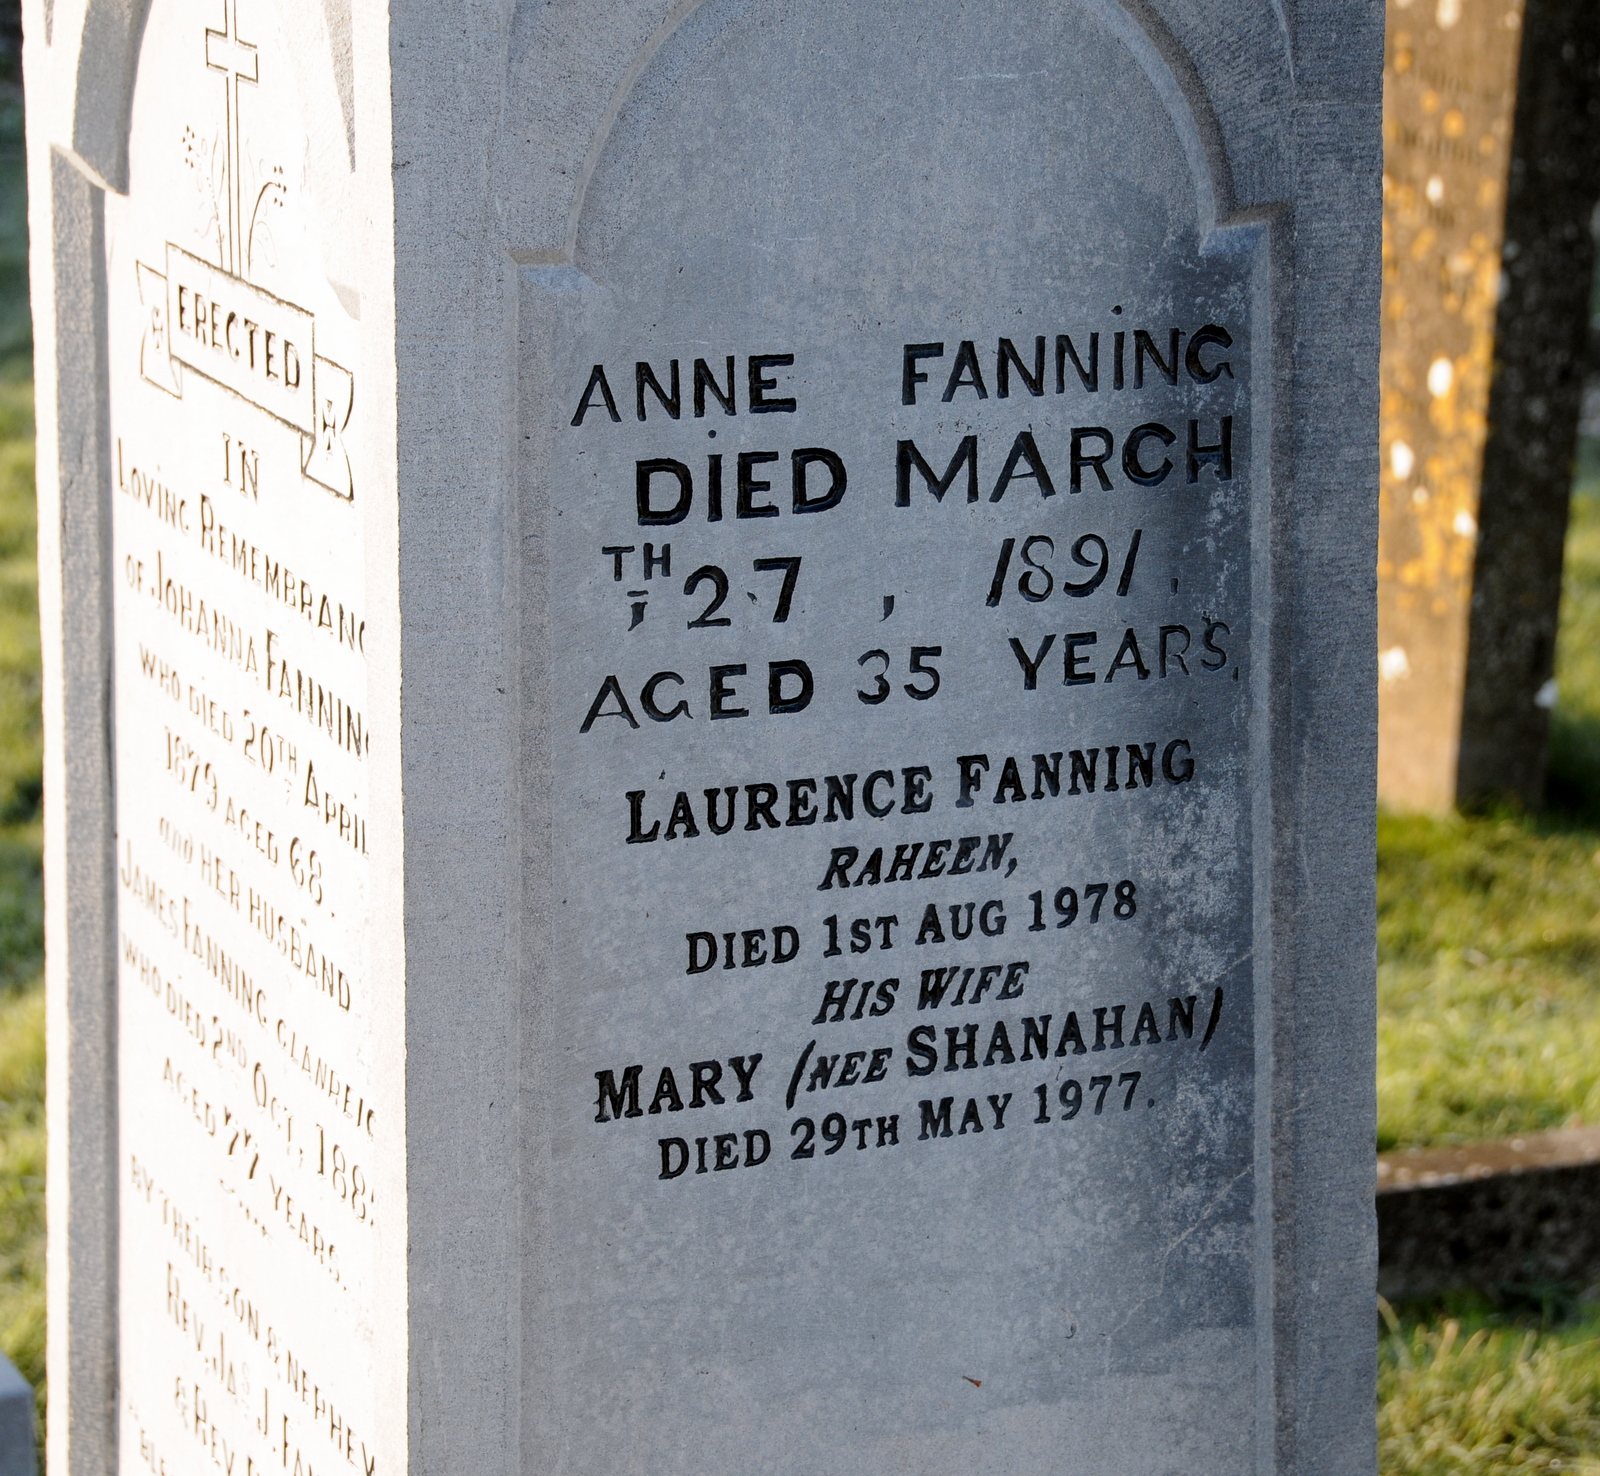 Holycross C of I Anne Fanning & Lawrence Fanning, Mary FAnning nee Shanahan